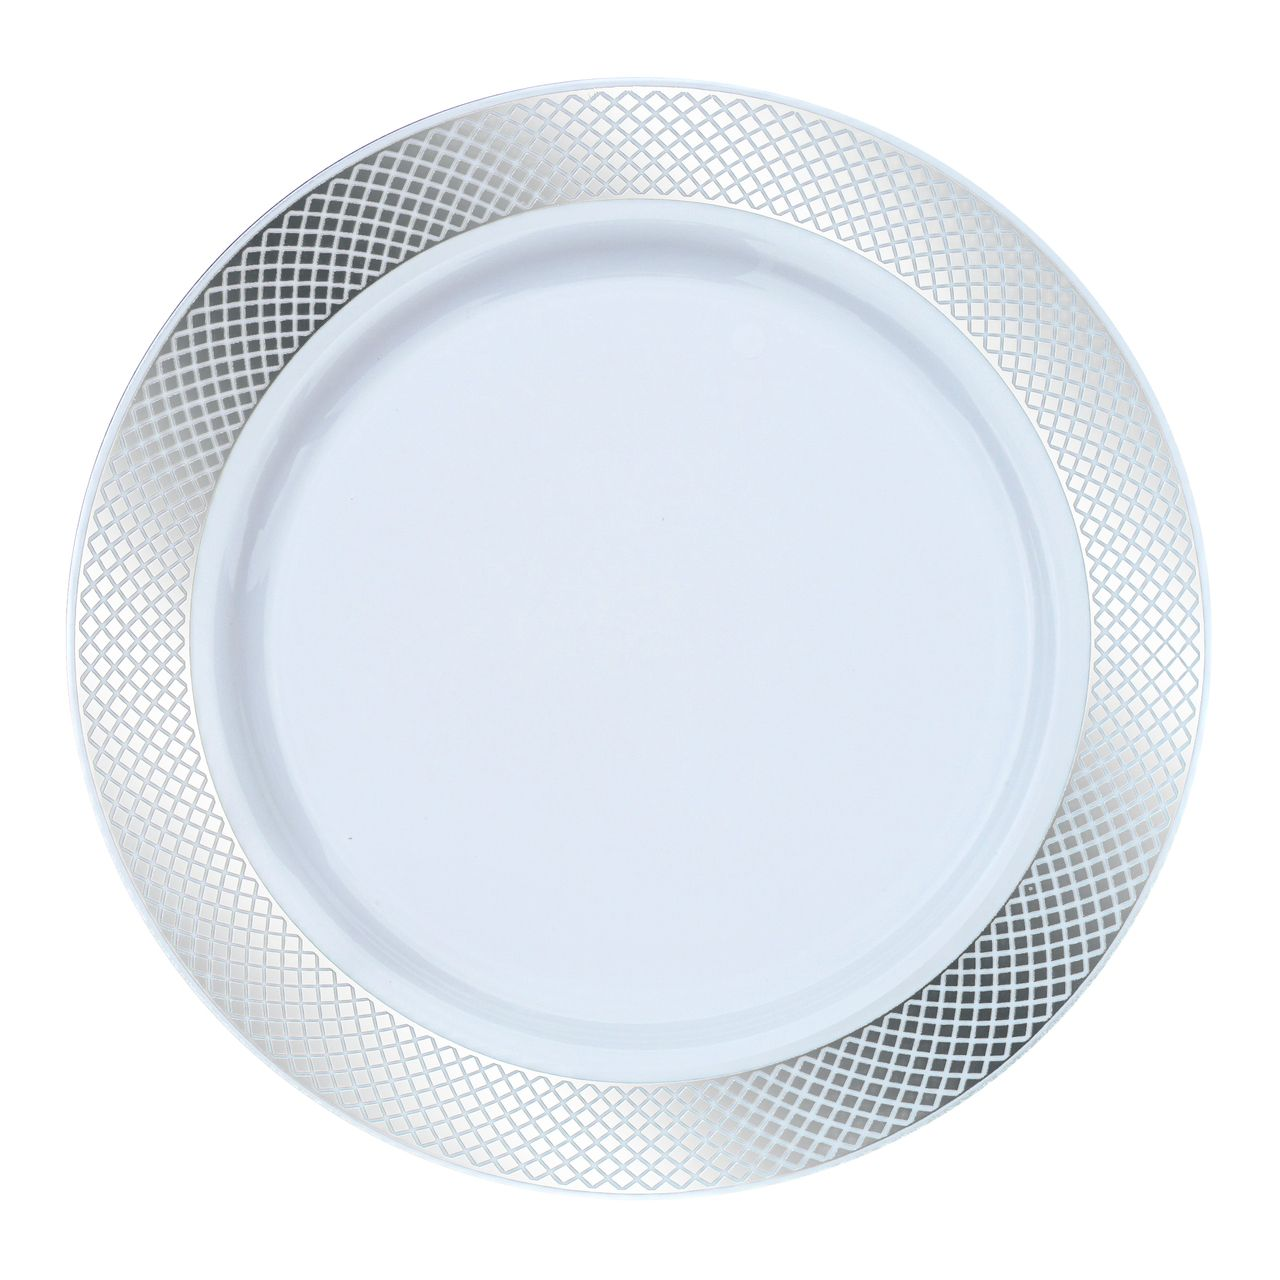 Stunning Disposable Plastic White with Silver Rim Design 7 \  Salad Plate - Posh Party Supplies  sc 1 st  Pinterest & Pin by Marcelle Rosenberg on Sammy BarMitzvah | Pinterest | Plastic ...